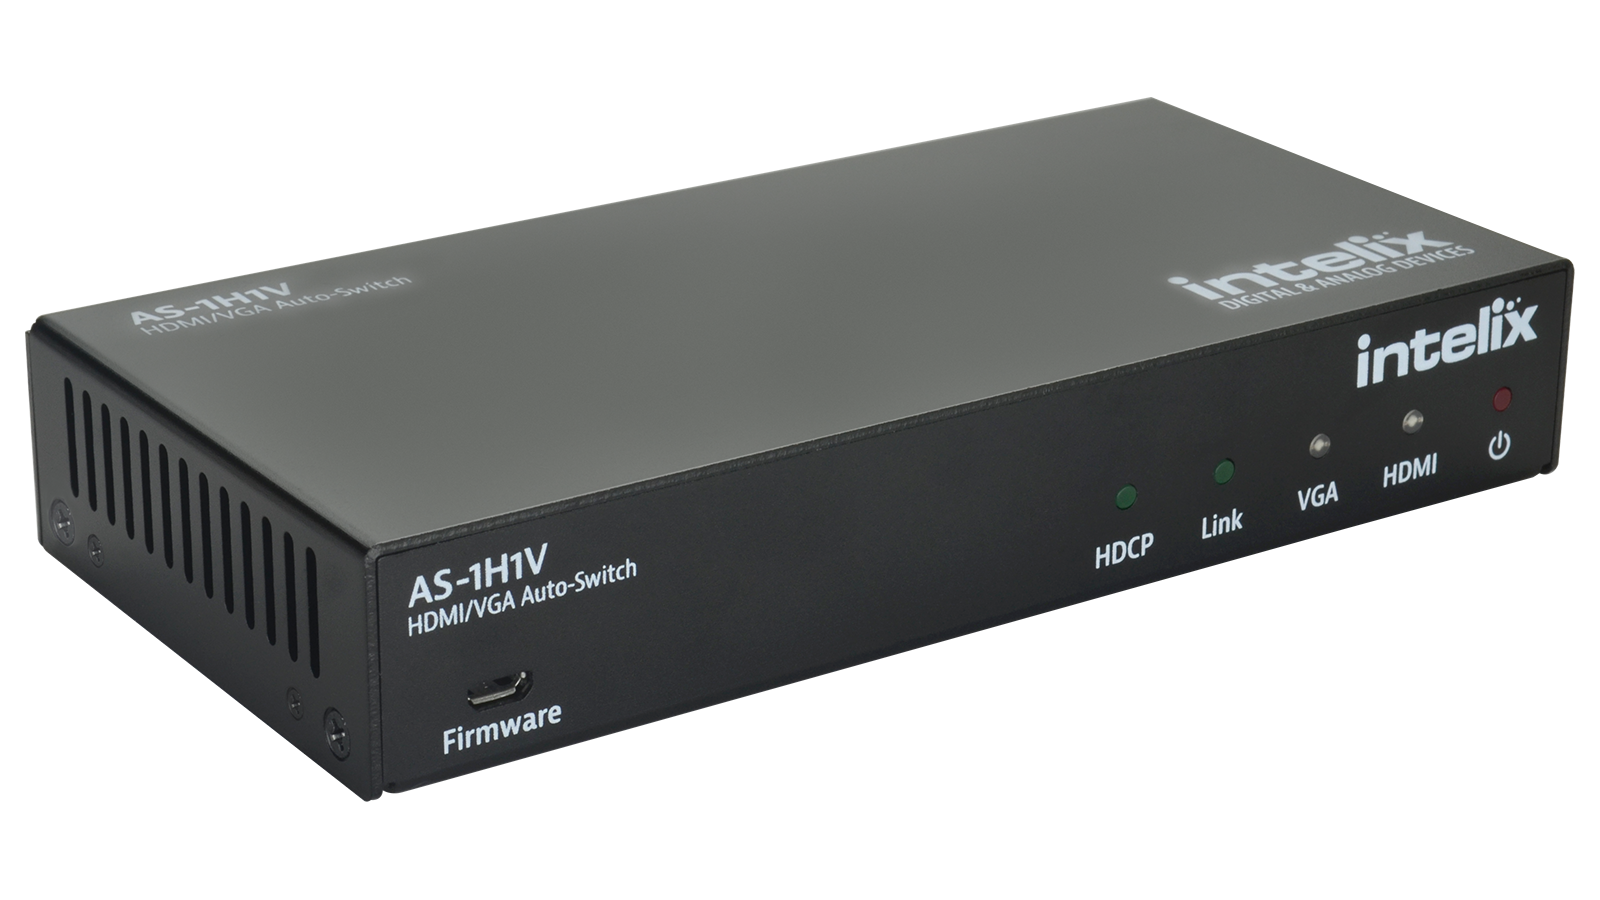 As 1h1v Hdmi Vga Auto Switcher With Scaling Hdbaset Output Cat5 Av Matrix Switches Audio Video Switch Solutions